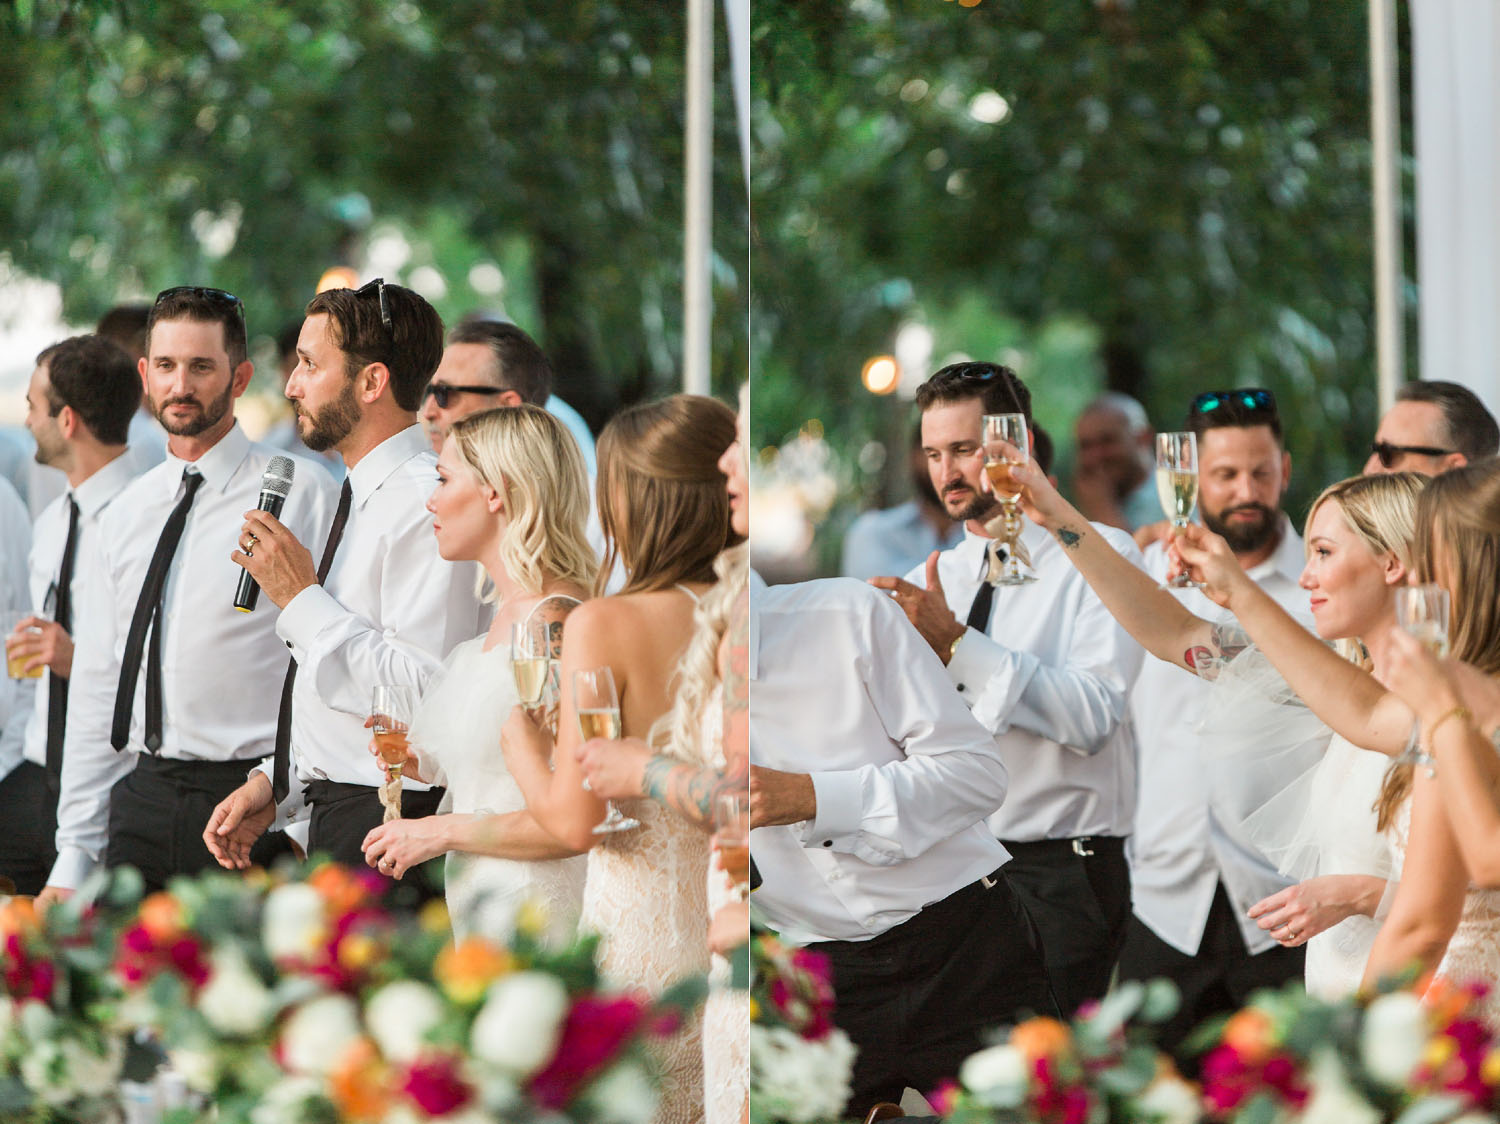 The Photege - Elegant Boho Wedding on Suburu Farm in Bakersfield California- Cassie and Darin Buoni-3057